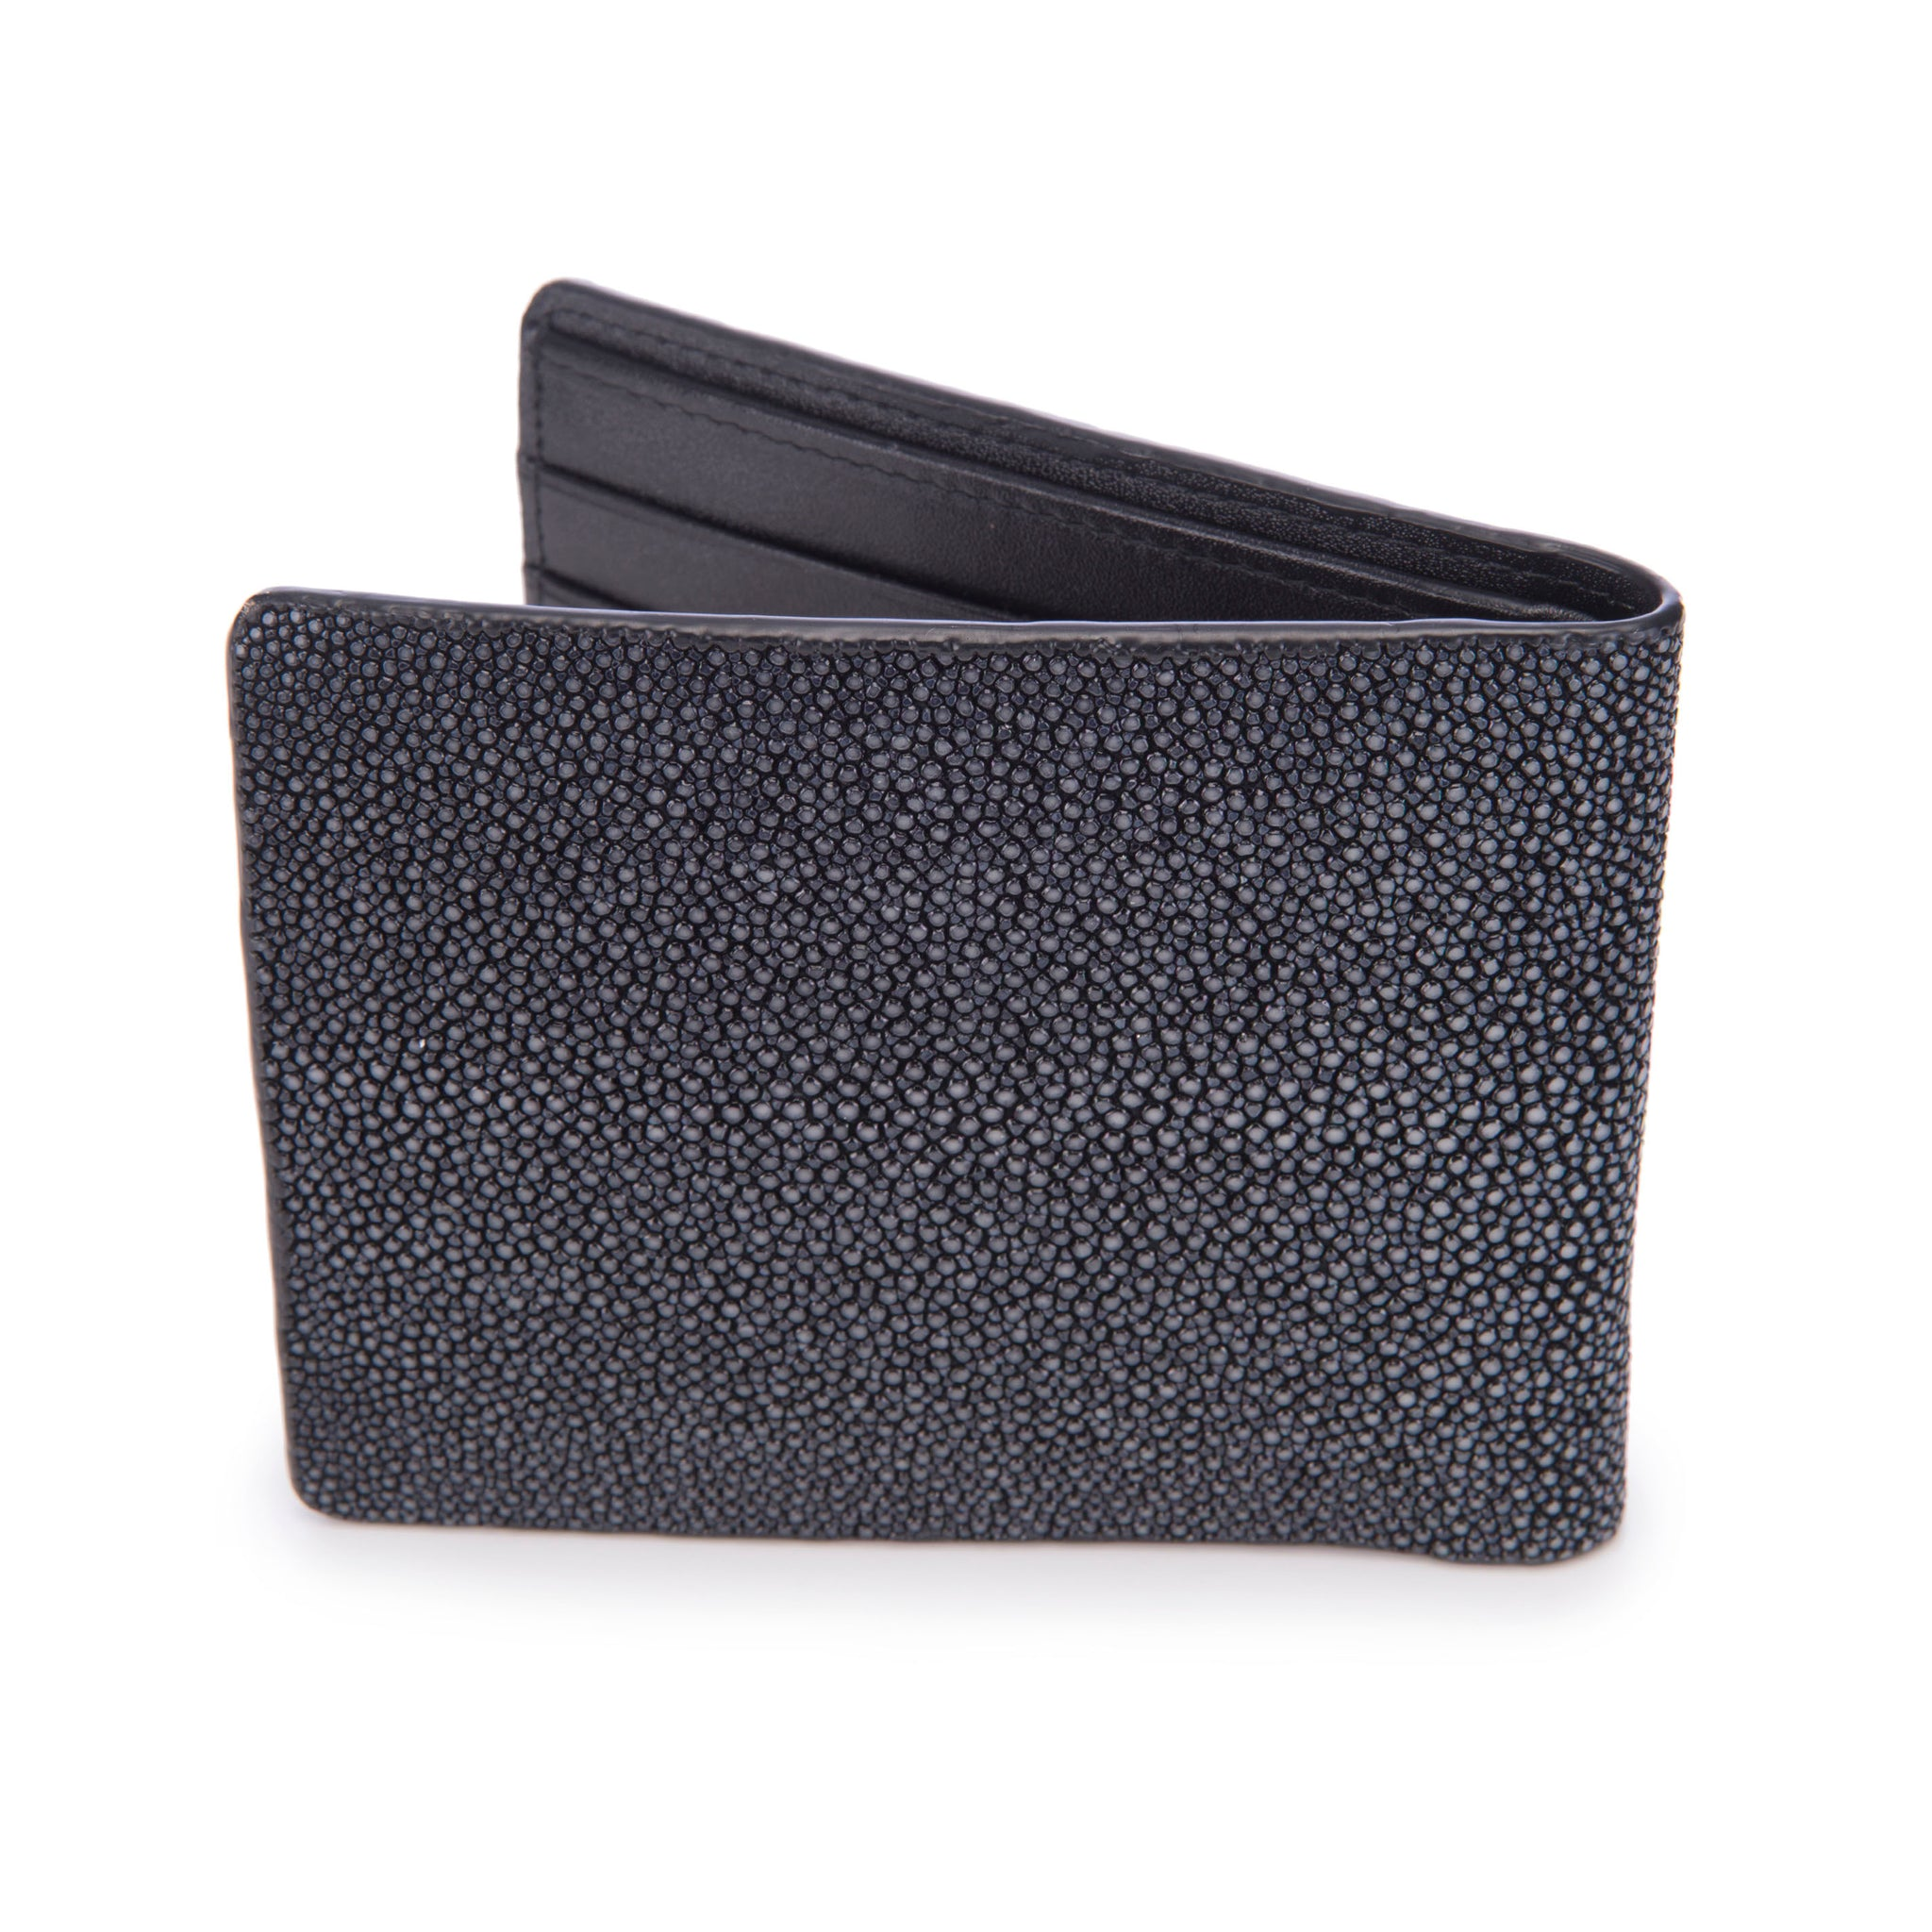 Shagreen Men's Billfold Black Back View Eric -Vivo Direct